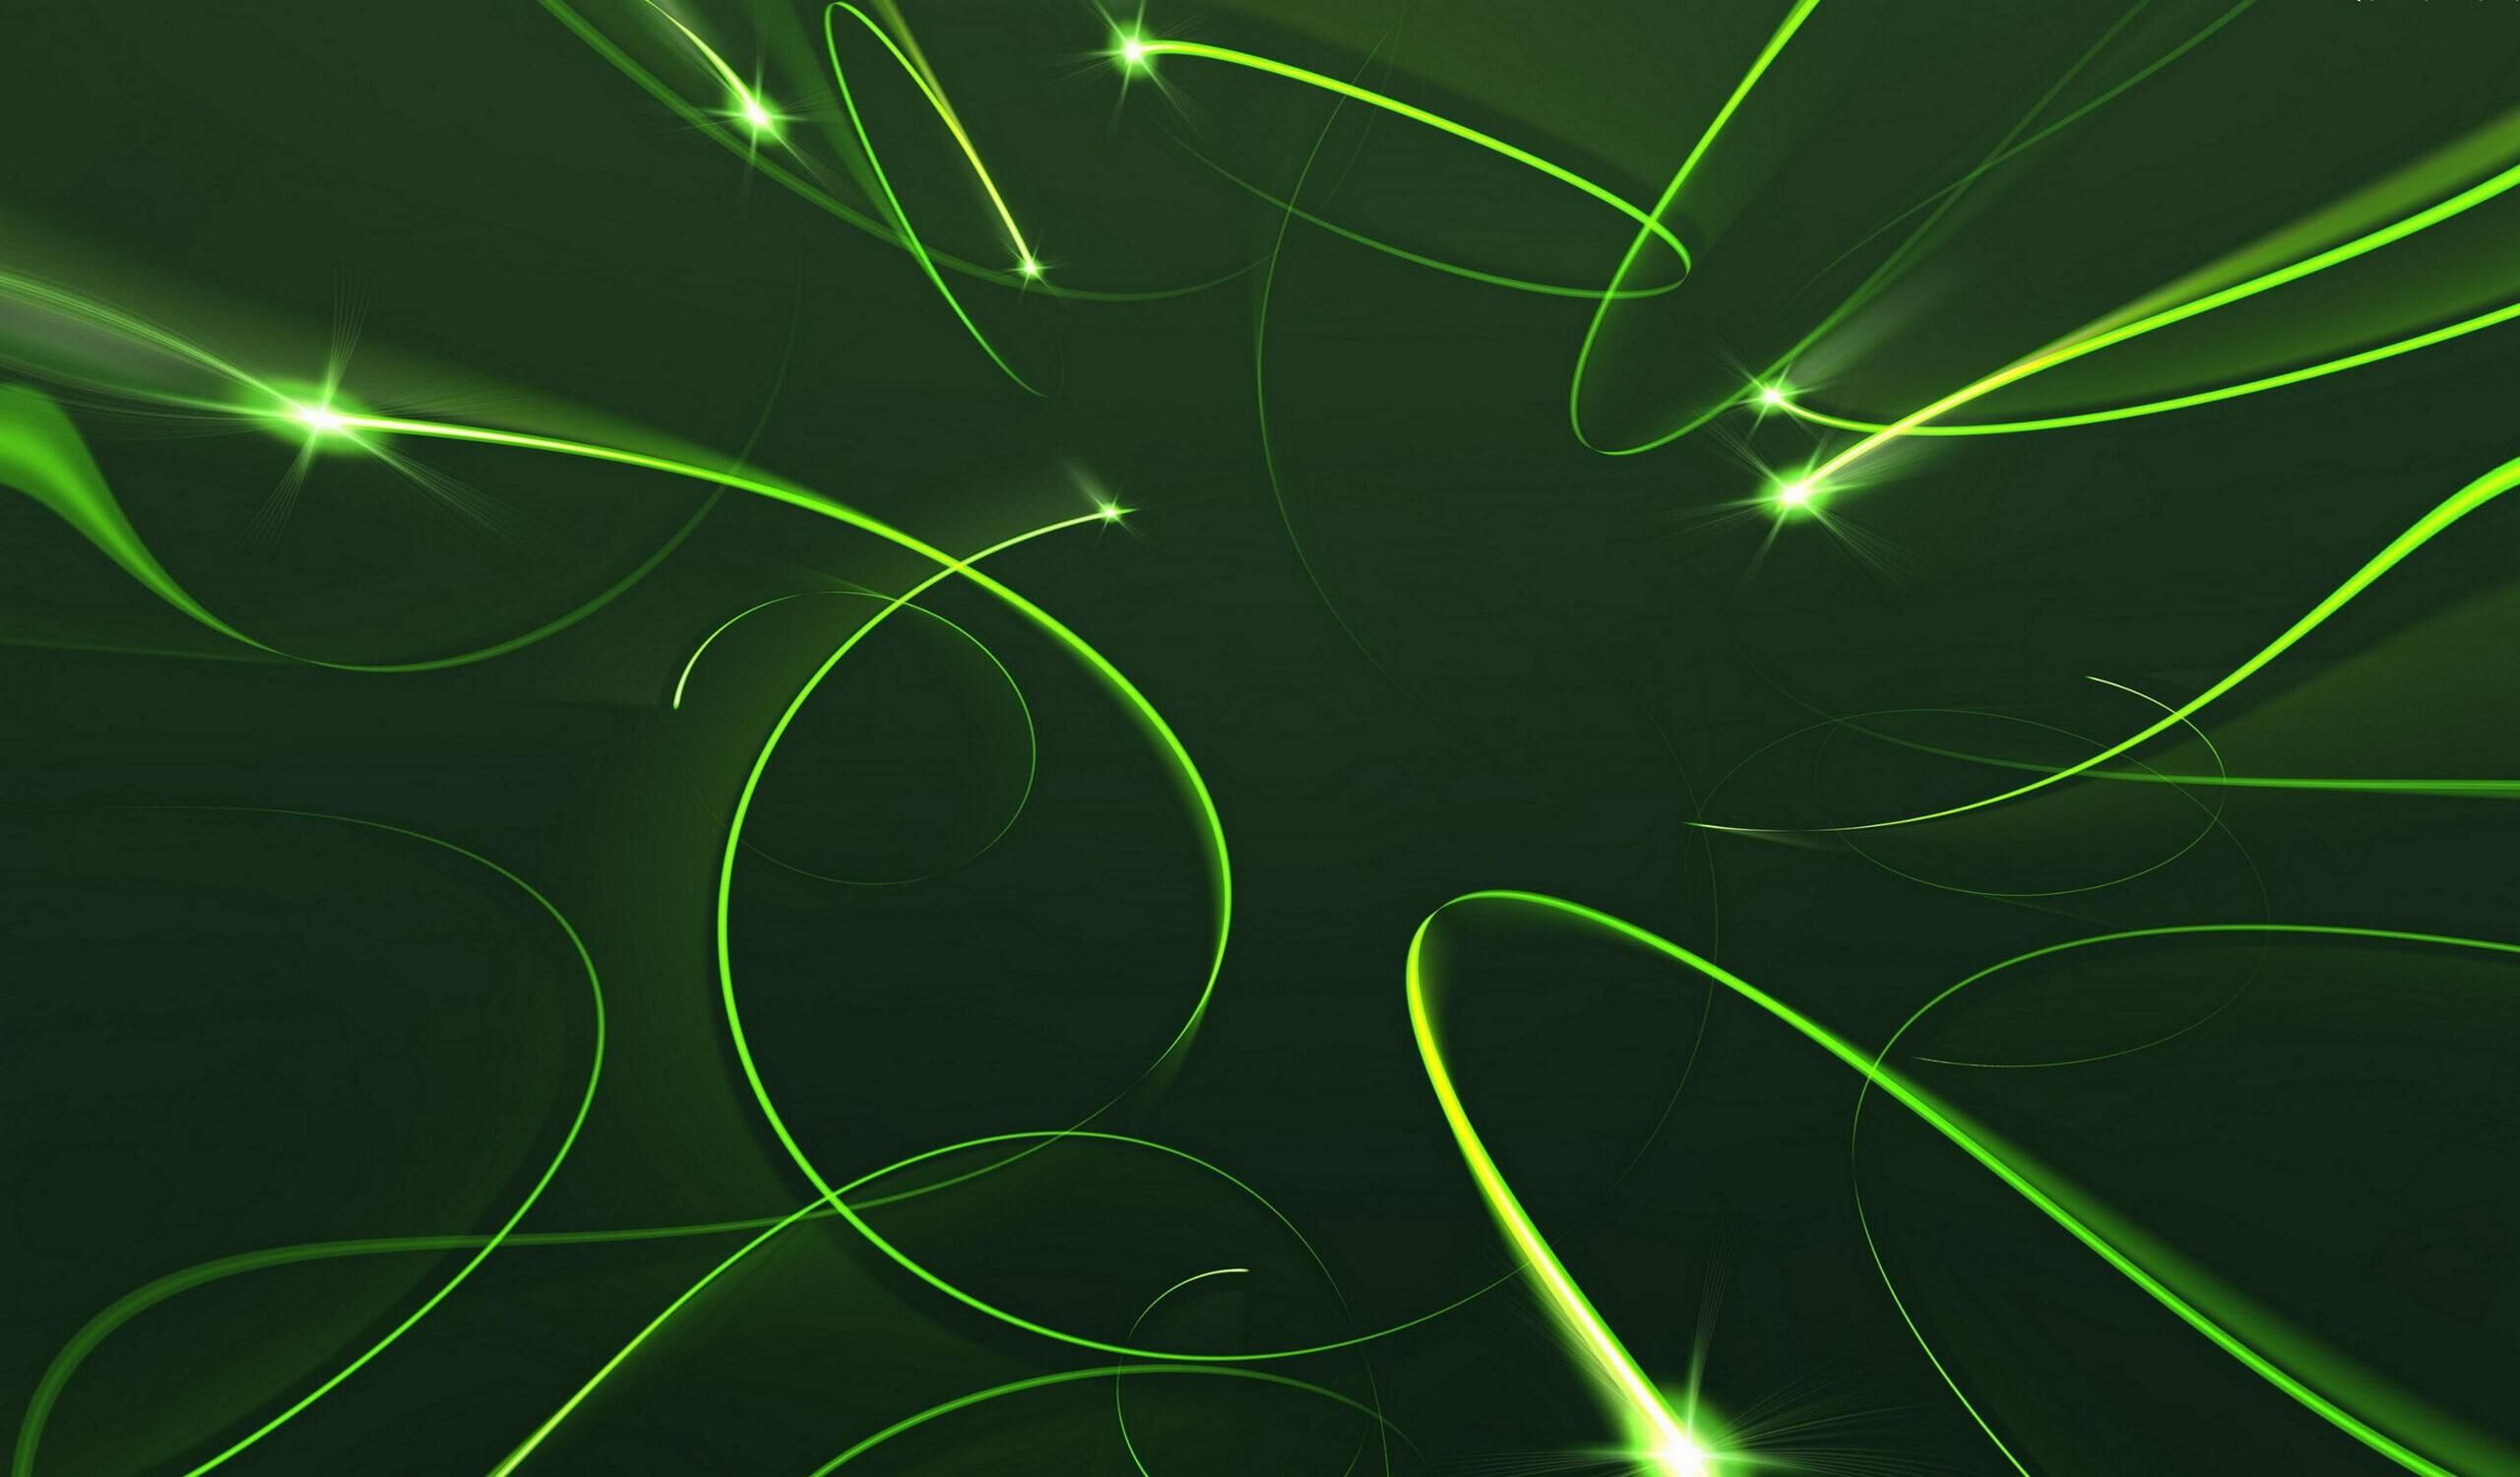 Dark Green Abstract Backgrounds Hd Desktop 10 Hd Wallpapers